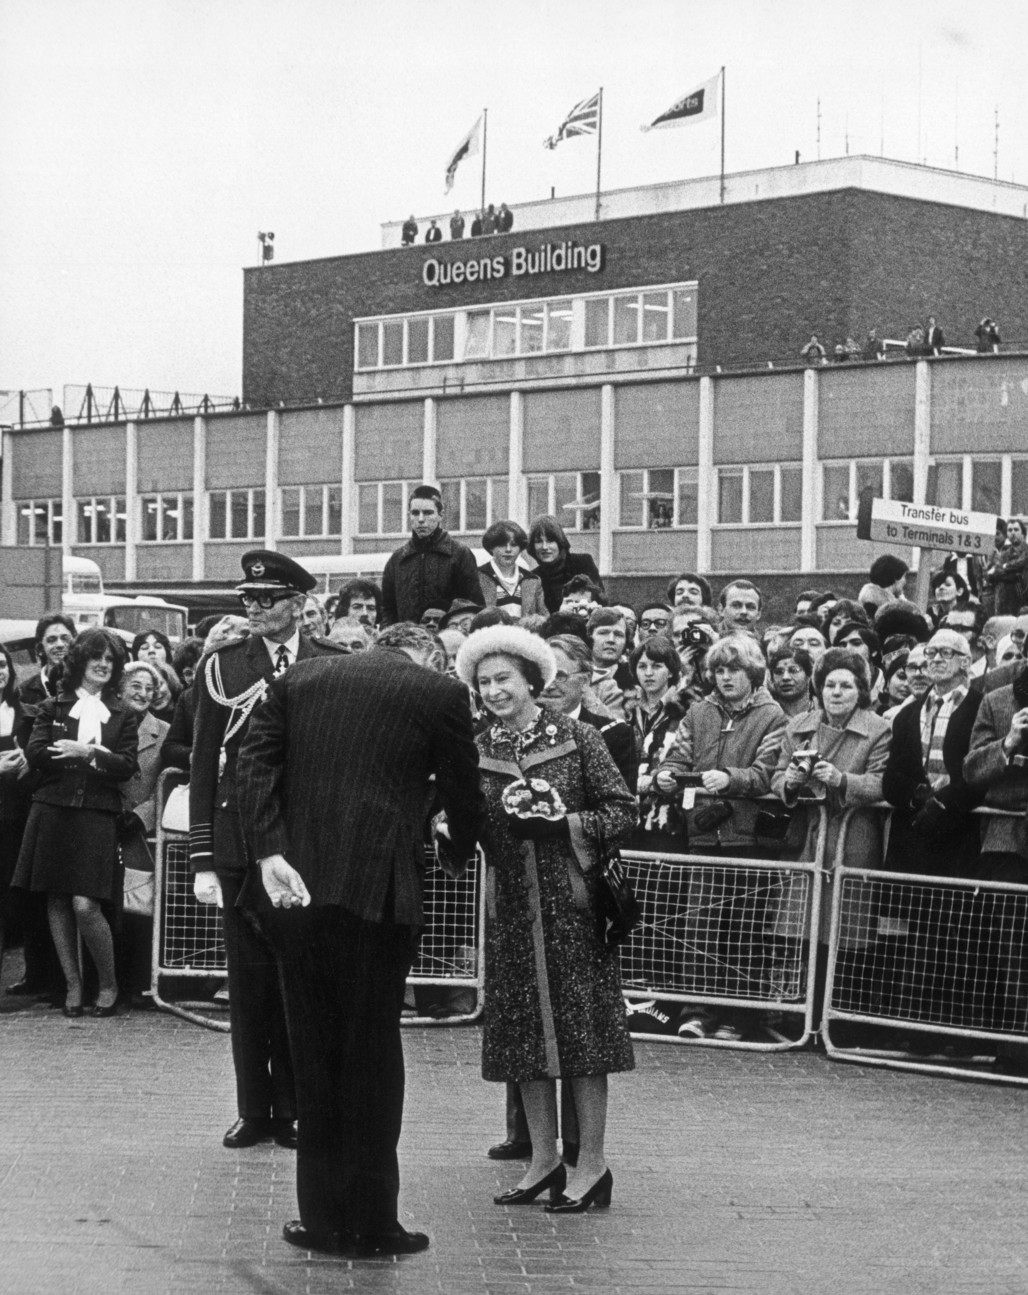 Queen Elizabeth II at the 1955 opening of Heathrows original Terminal 2. Image via keepcalmandharryon.com.